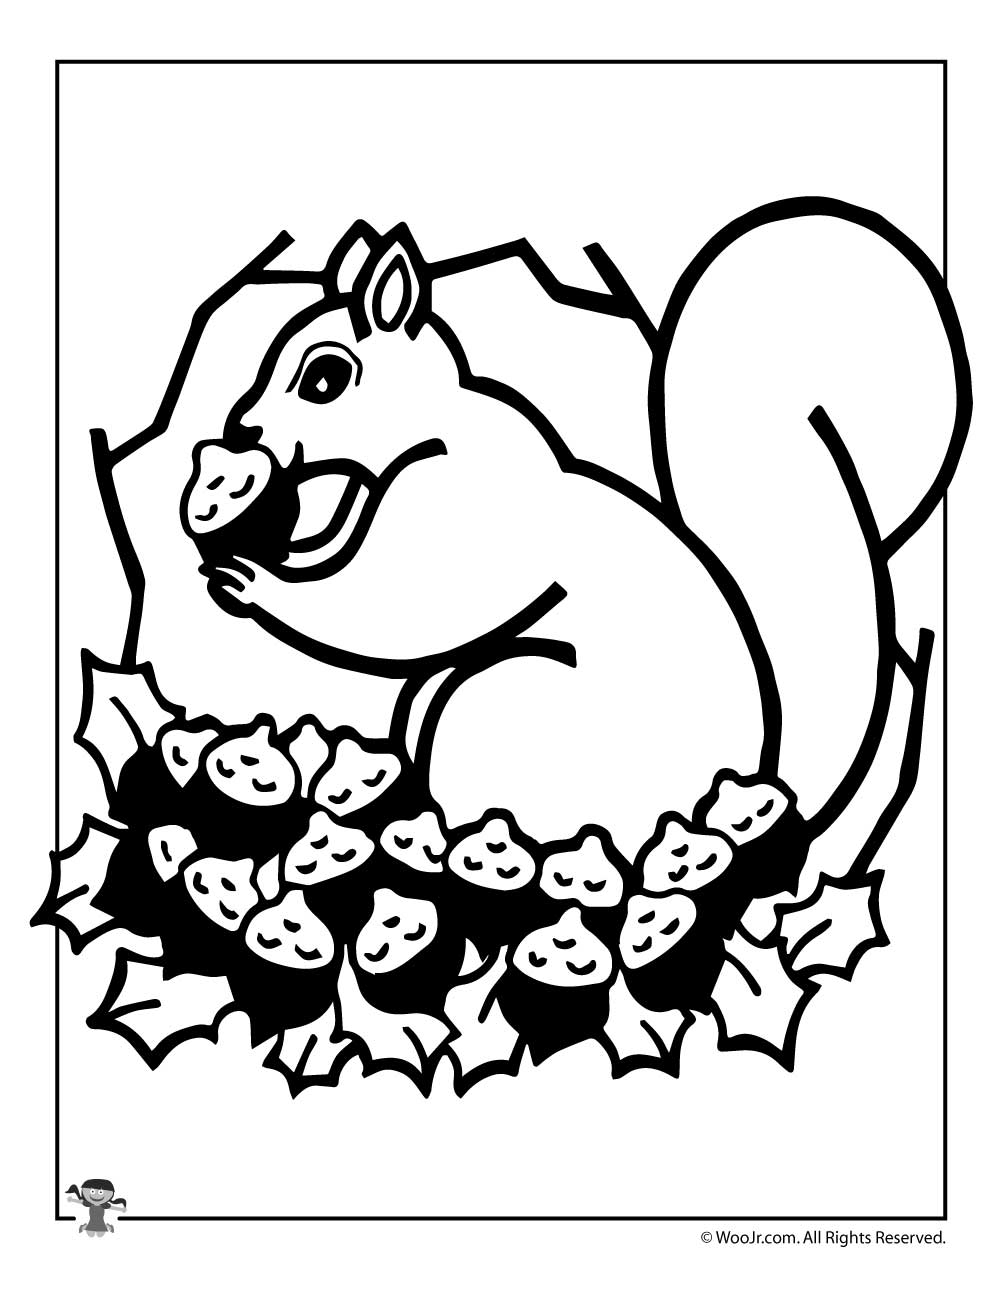 Fall Squirrel Coloring Page | Woo! Jr. Kids Activities